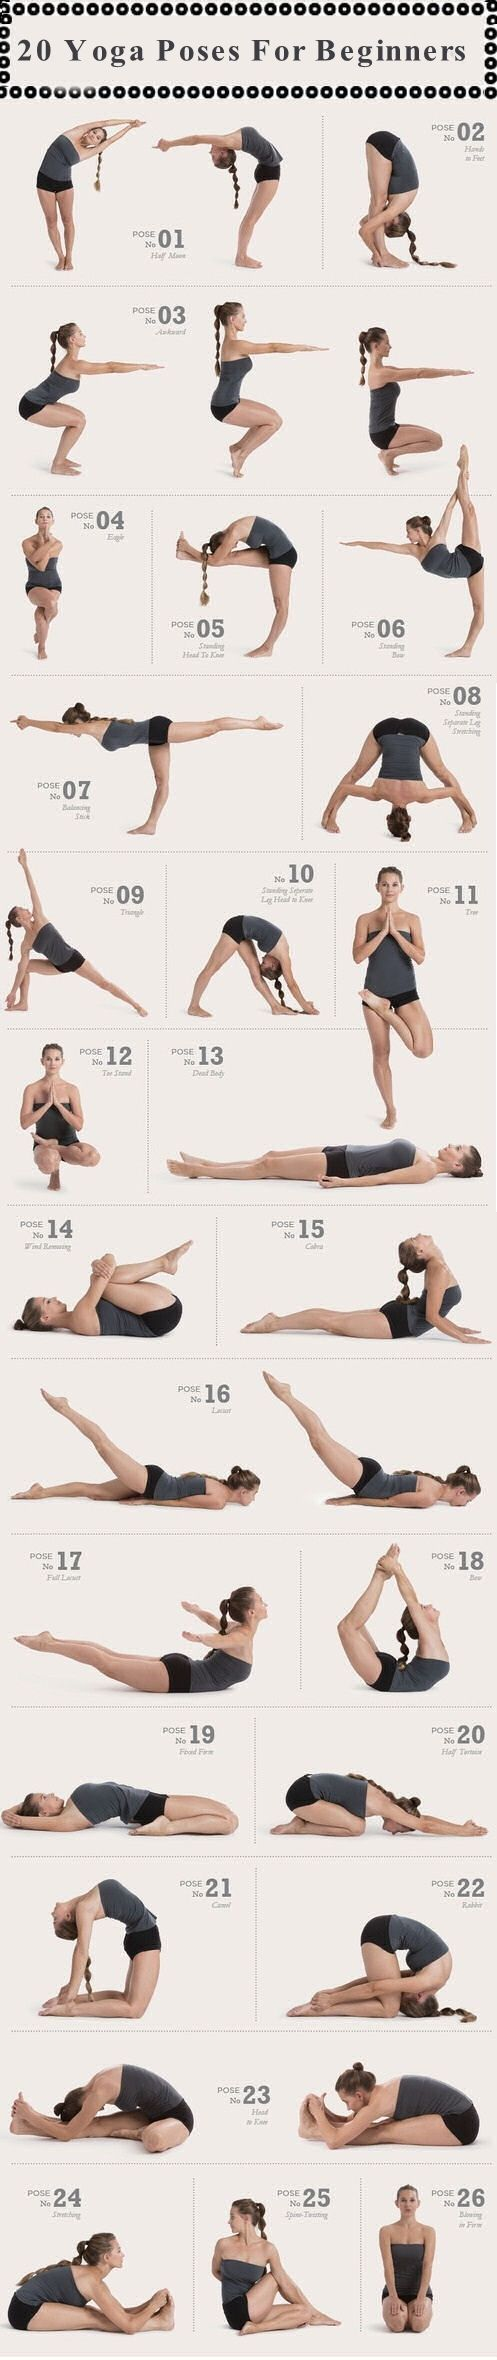 This is totally bikram. And I would NOT call this beginners. Hell I can barely do some of these correctly.